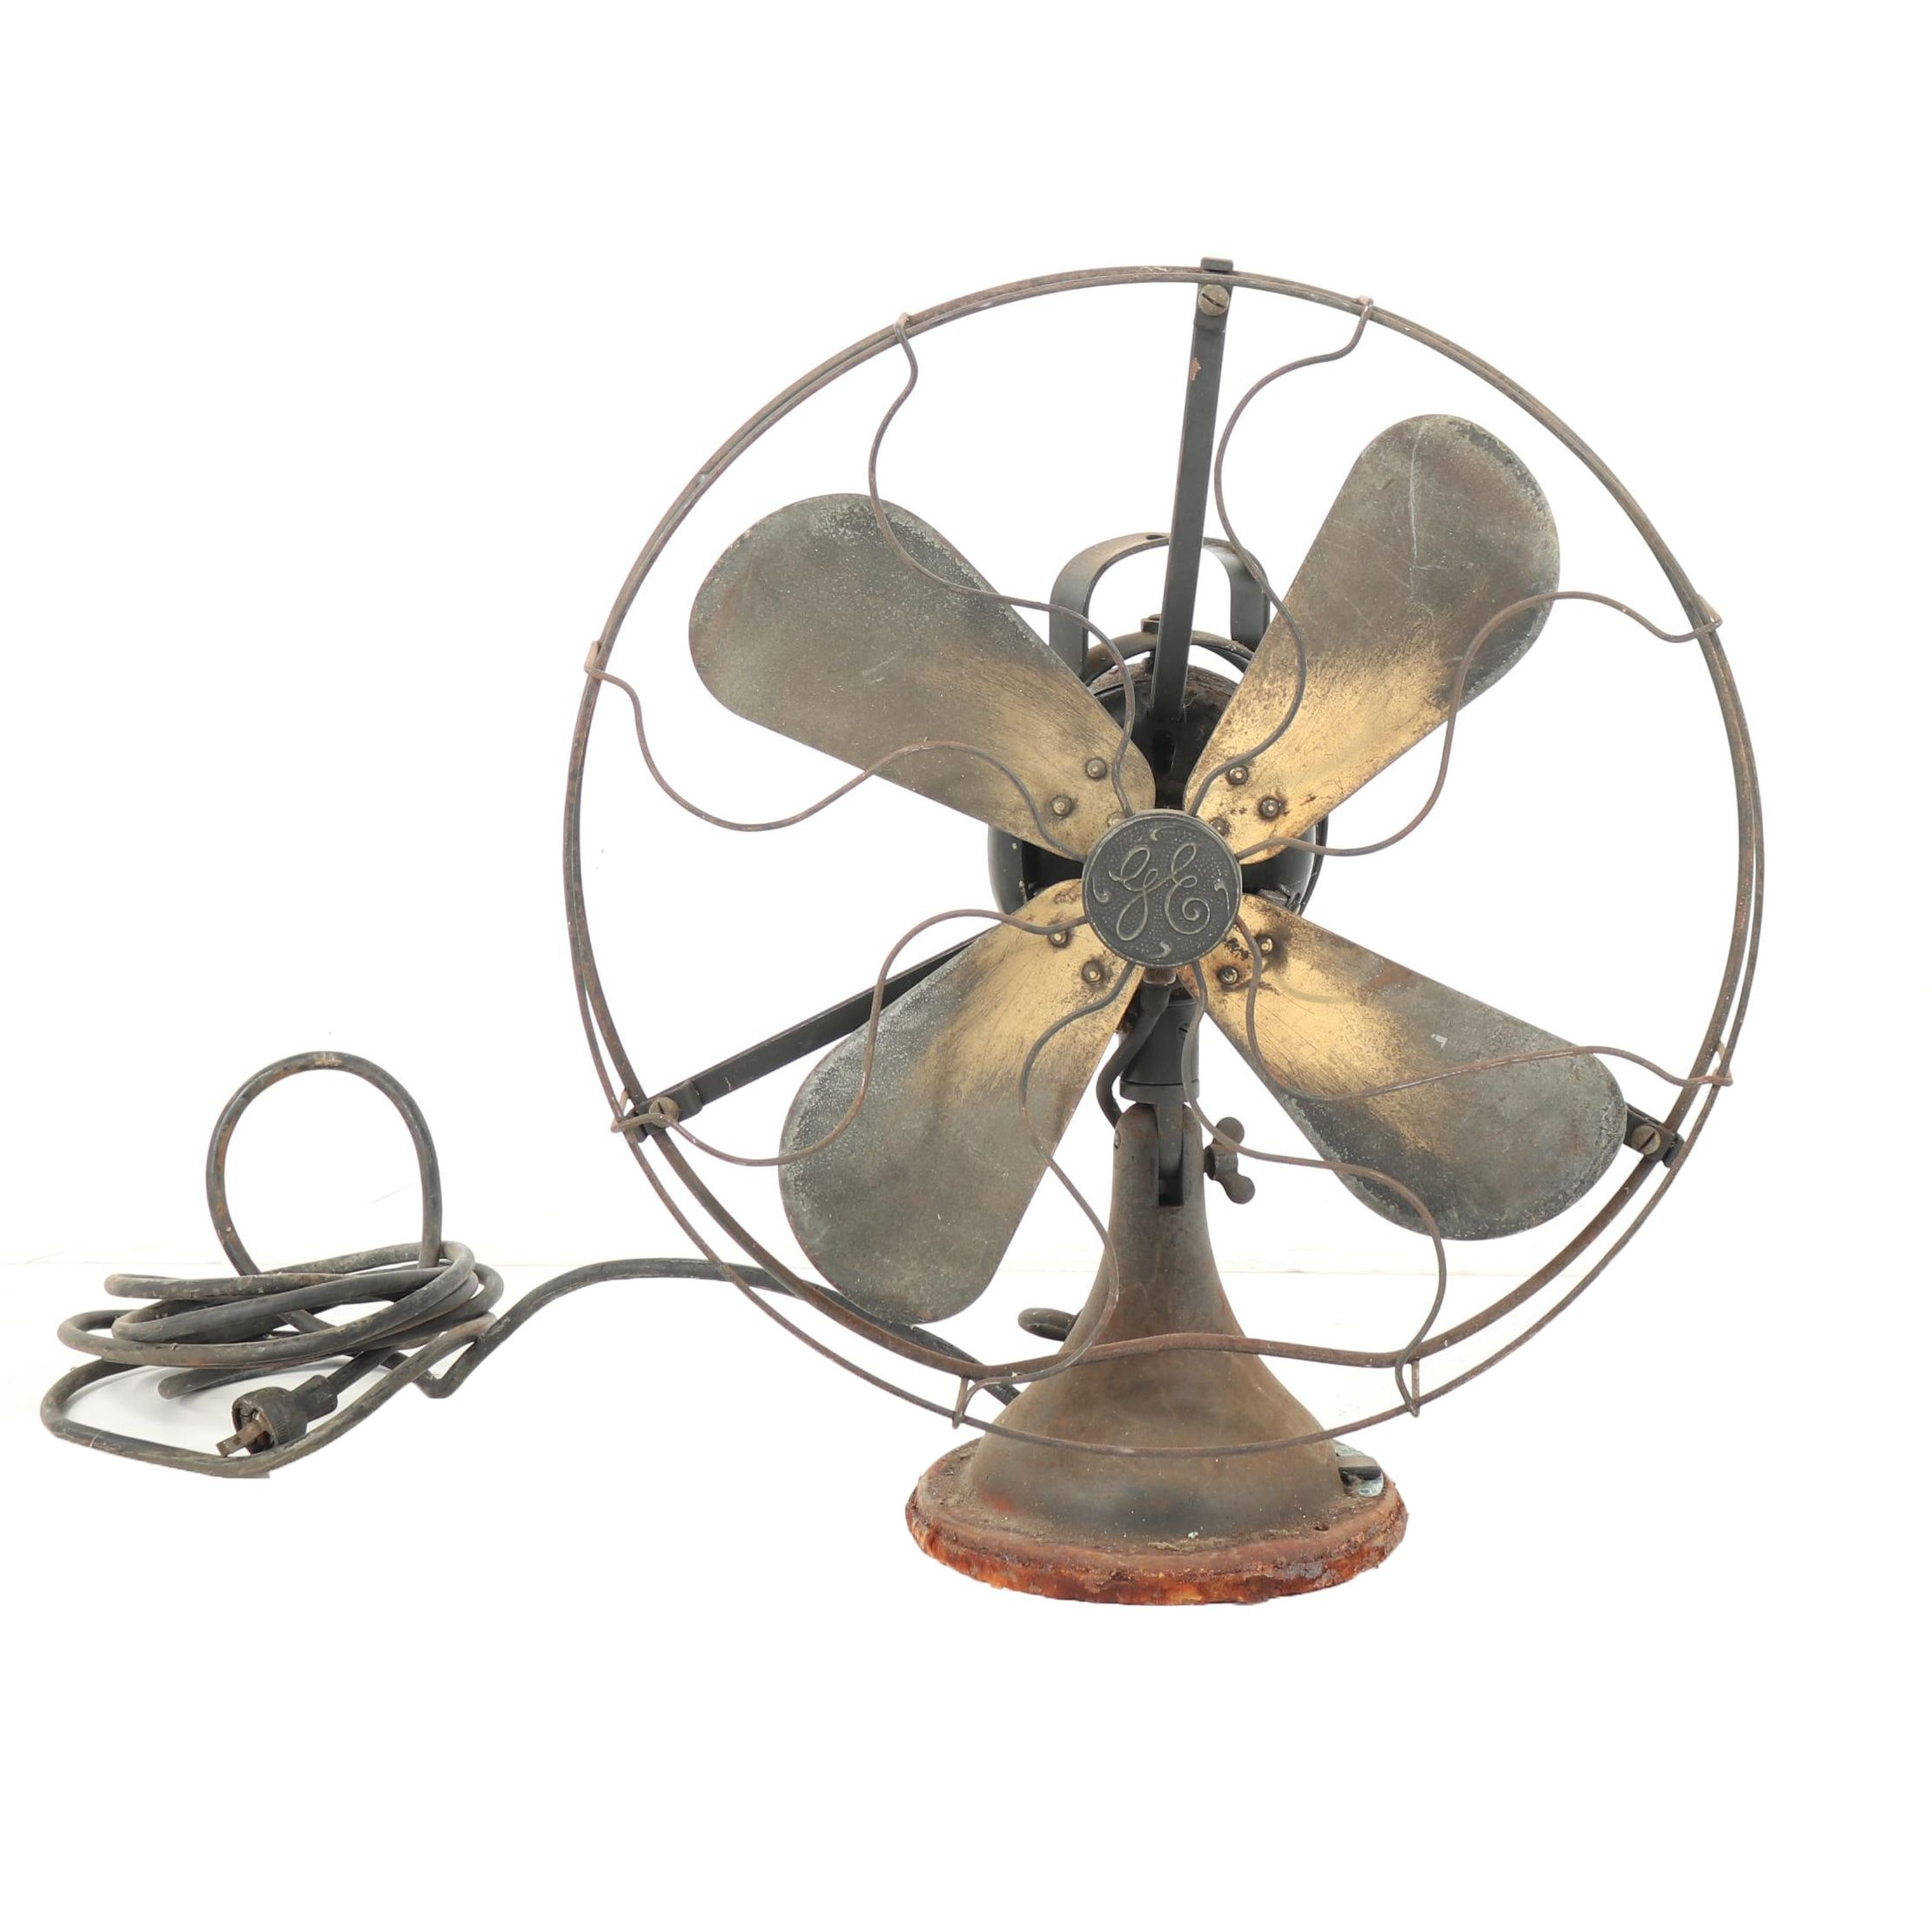 General Electric Metal Fan, Early to Mid 20th Century